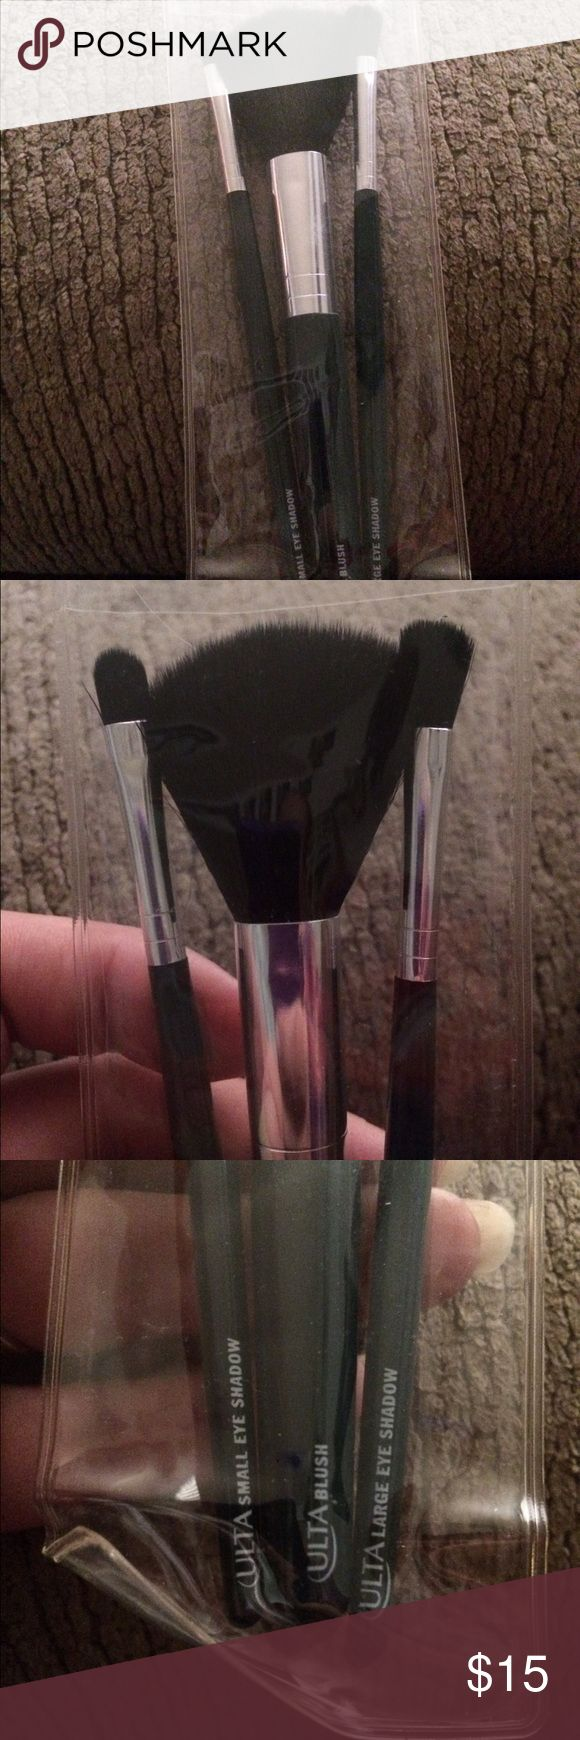 It Cosmetics For Ulta Airbrush Blending Crease Brush 105